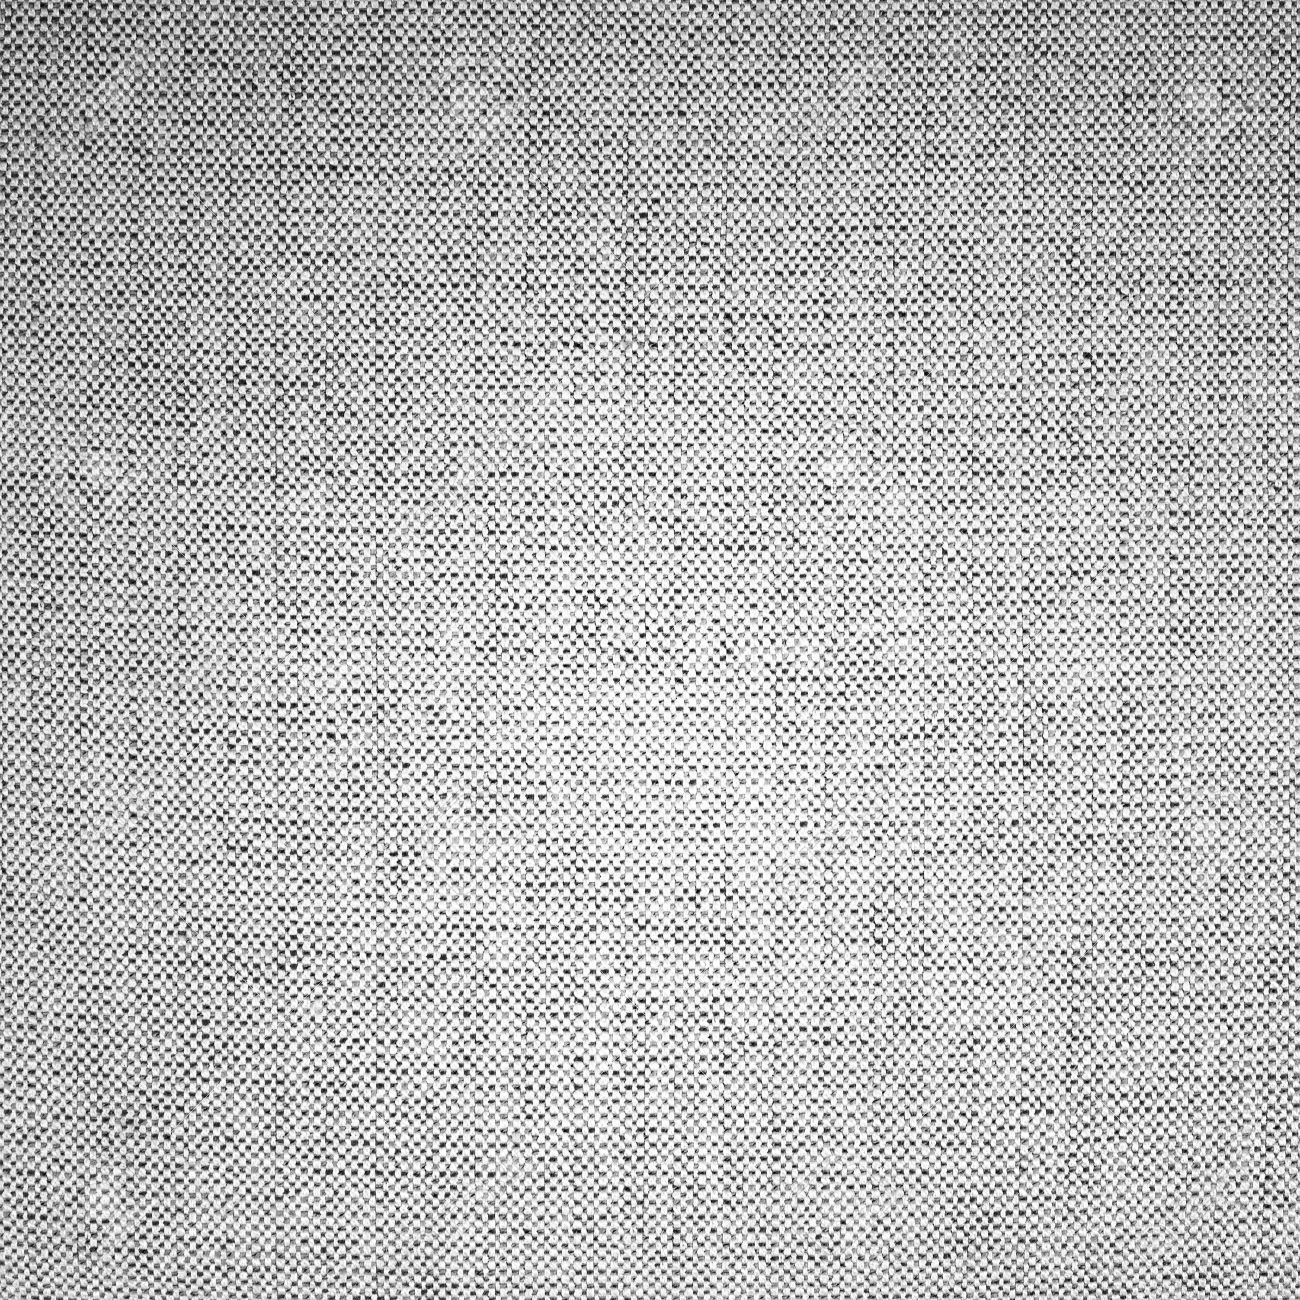 Grey Cloth Texture Background Part Of Sofa Fabric Stock Photo